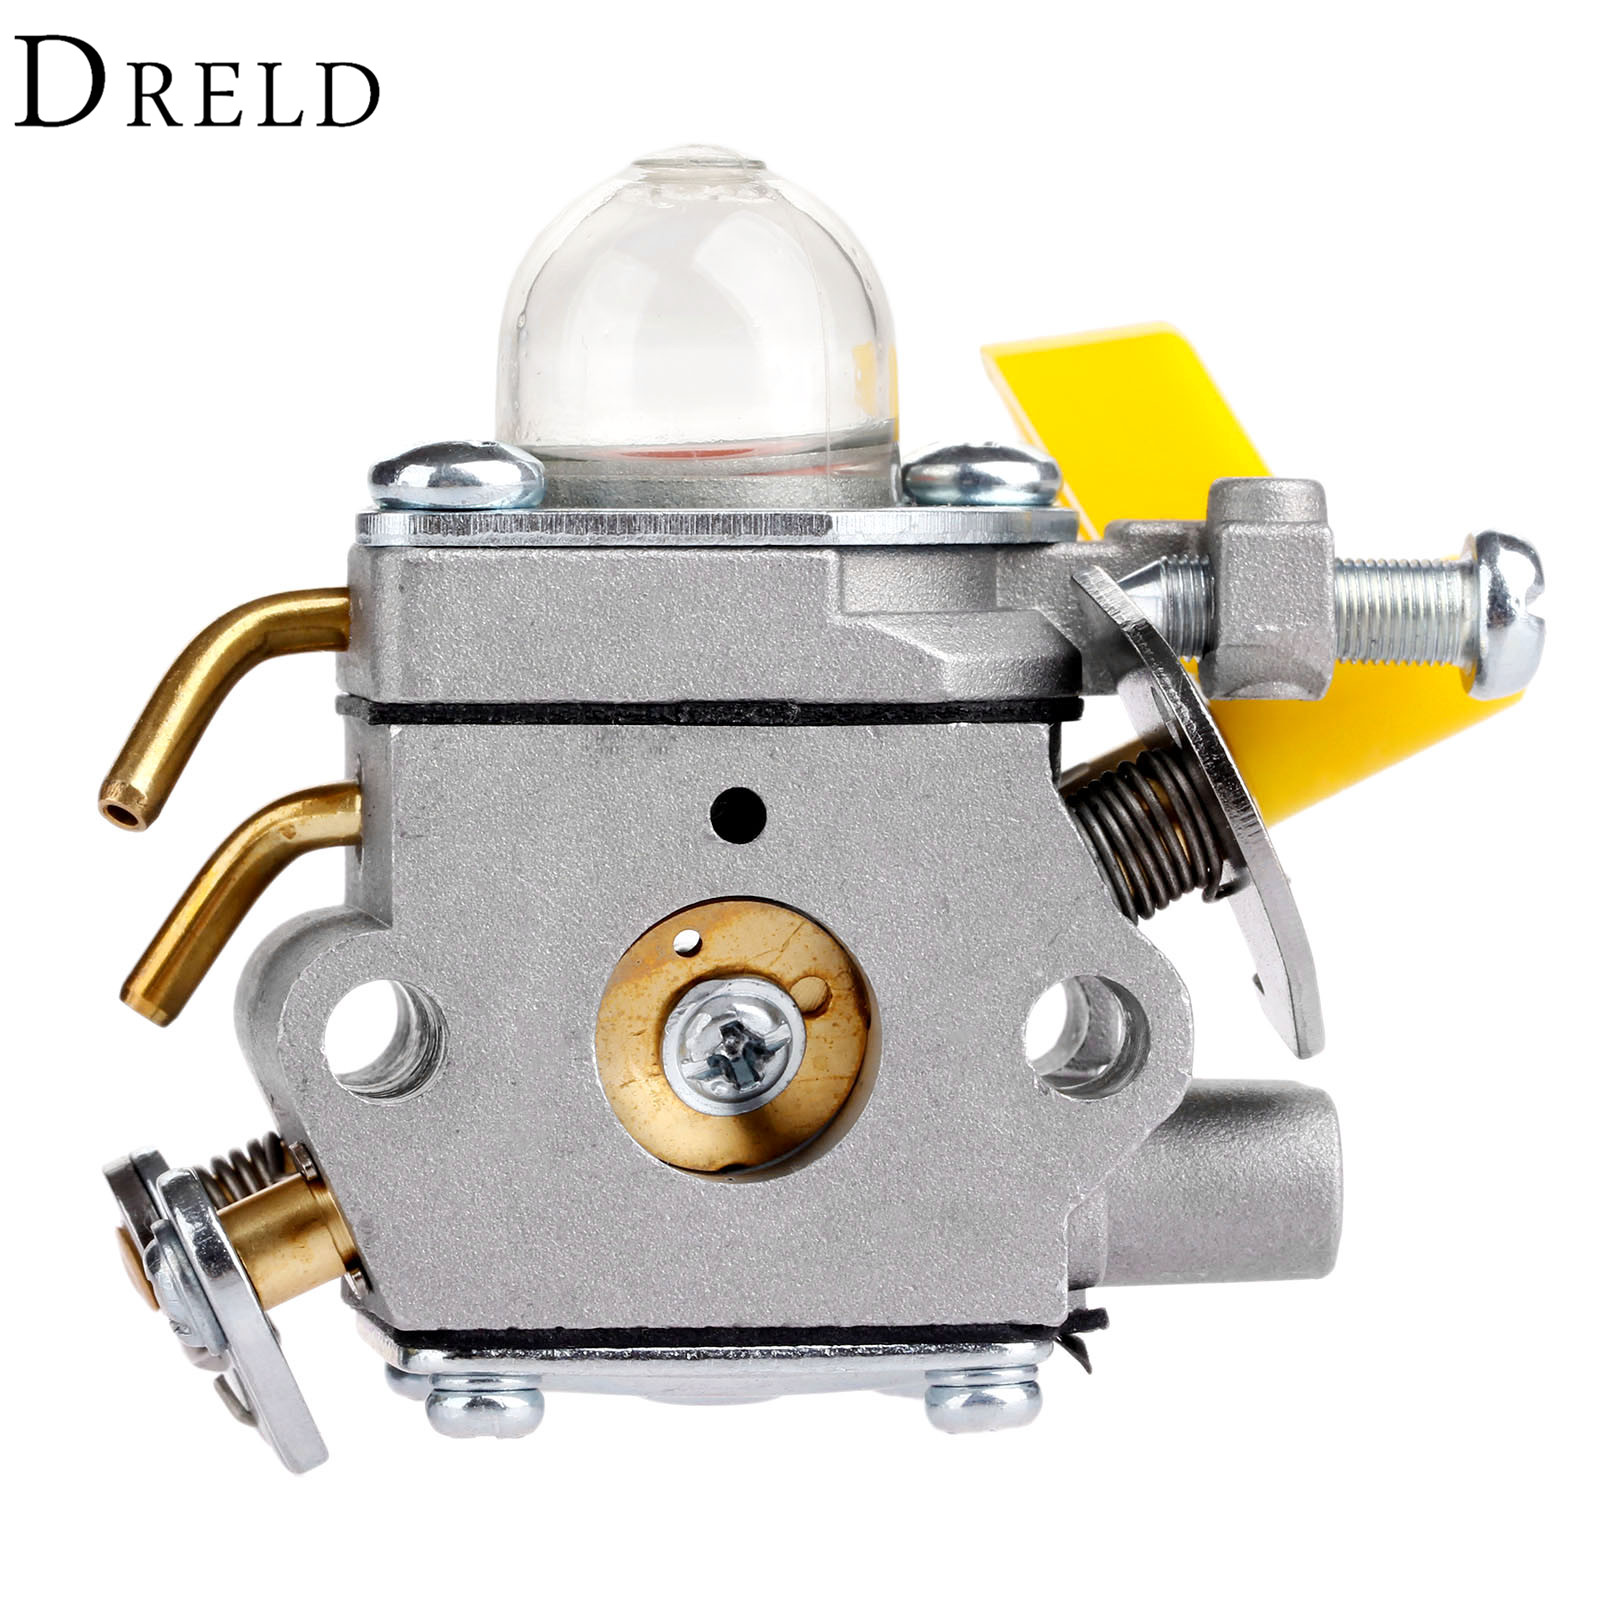 DRELD Carburetor Carb for HOMELITE RYOBI 25cc 26cc Line String Trimmer Backpack Blower Chainsaw Spare Parts Garden Tools Parts carburetor rebuild c1u carb kit zama rb 29 for homelite ryobi blower trimmer spare parts rb 29